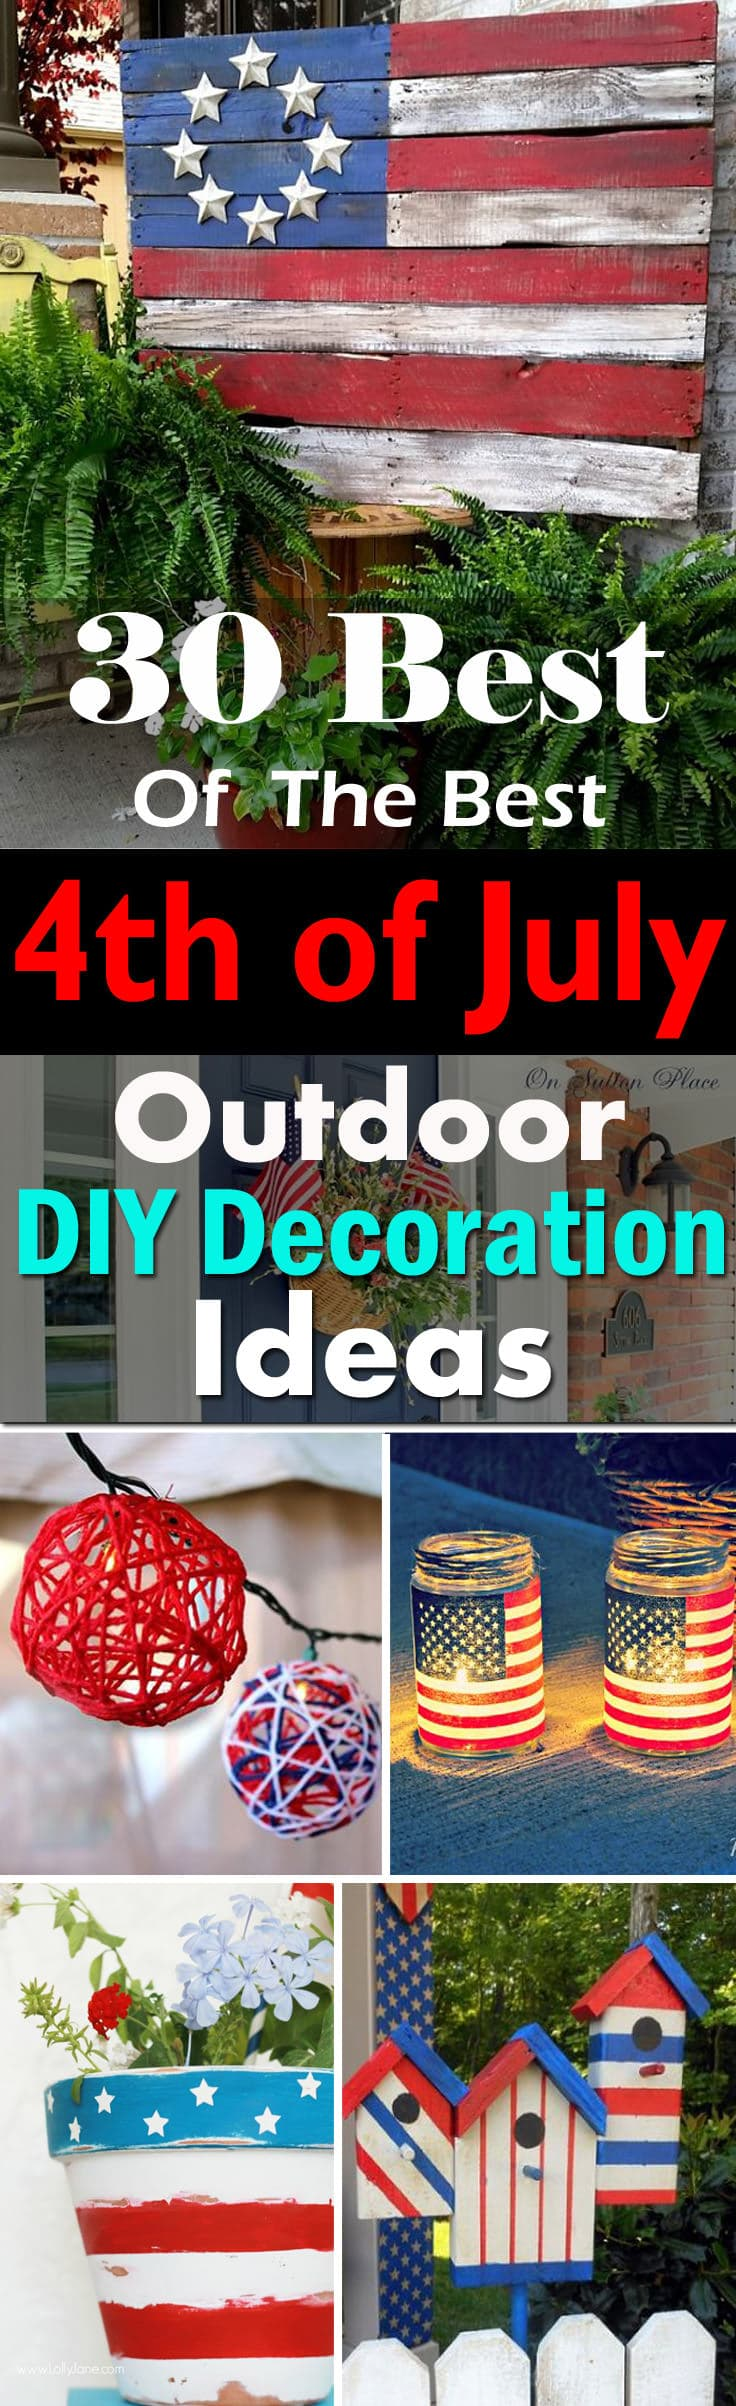 Add the combination of Red, White, and Blue perfectly to your 4th of July Decorations with these DIY ideas!